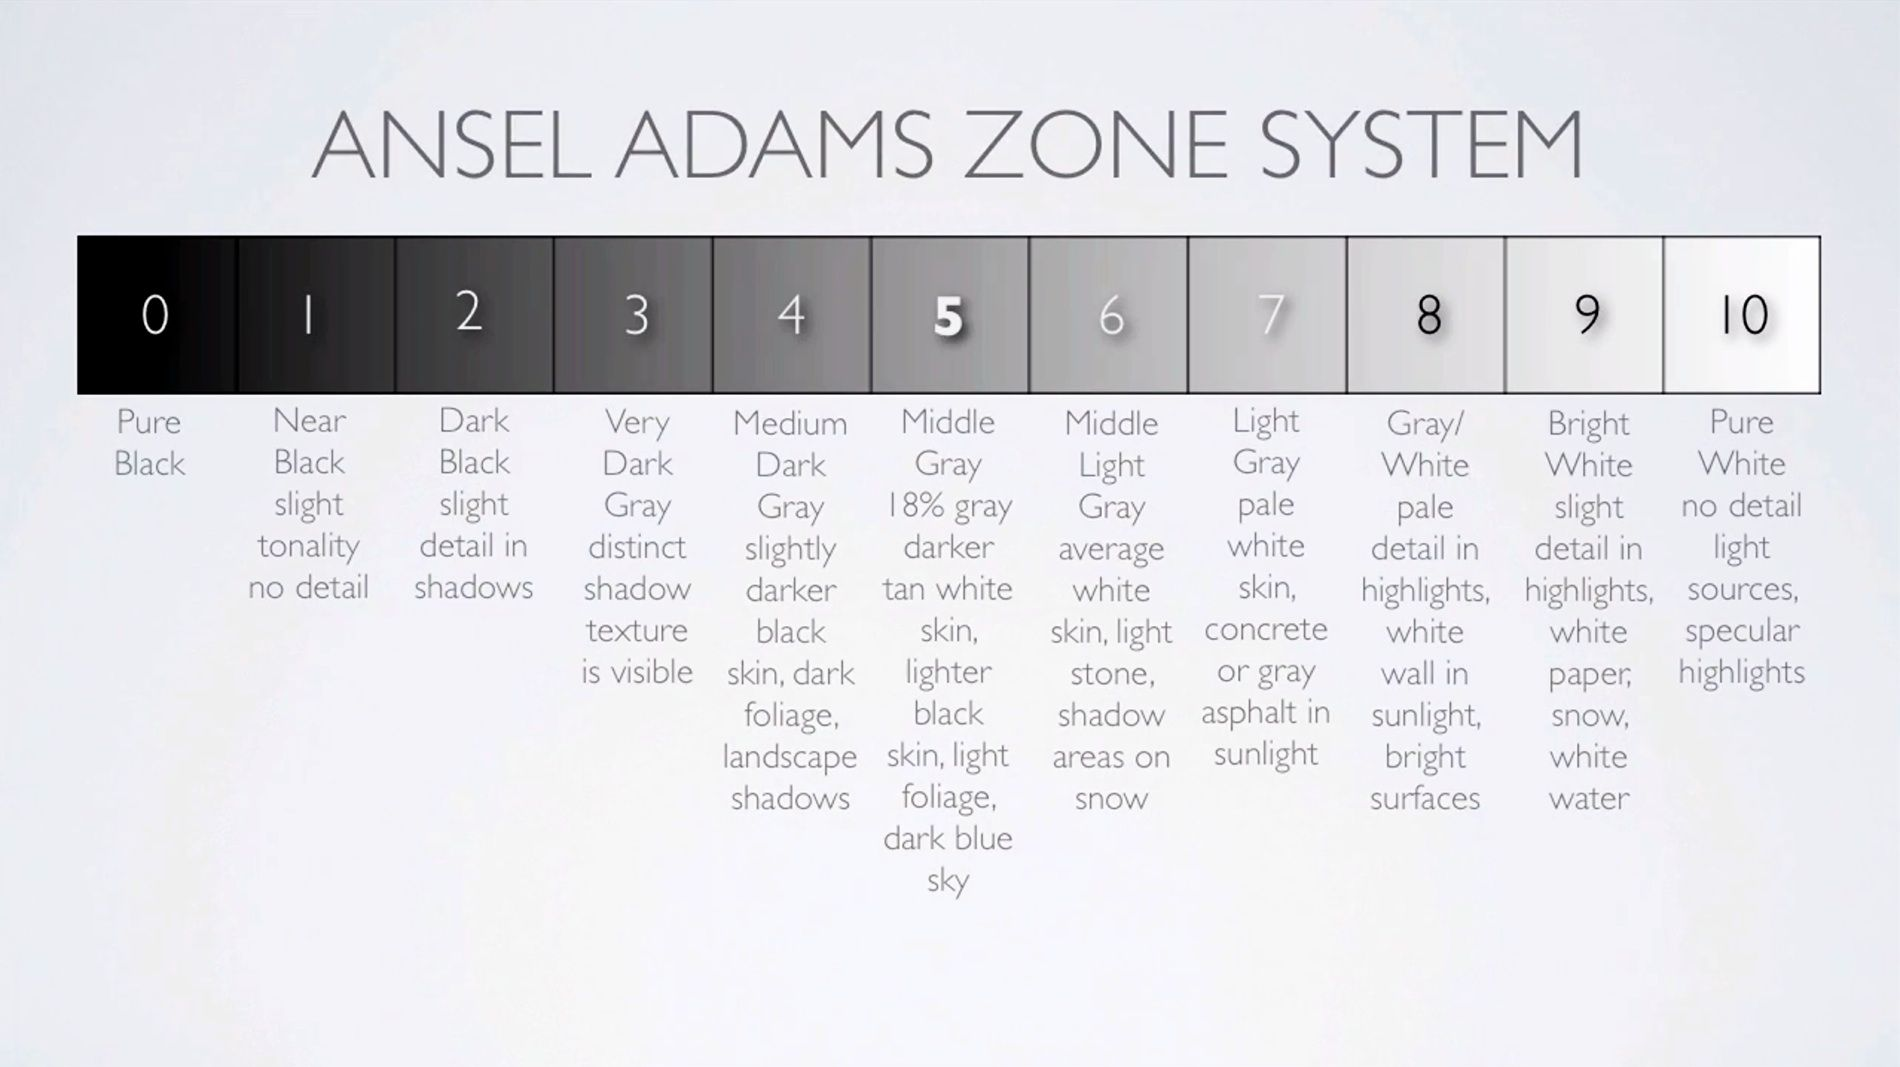 Each of the 10 zones described in detail this is the essence of understanding ansel adams zone system